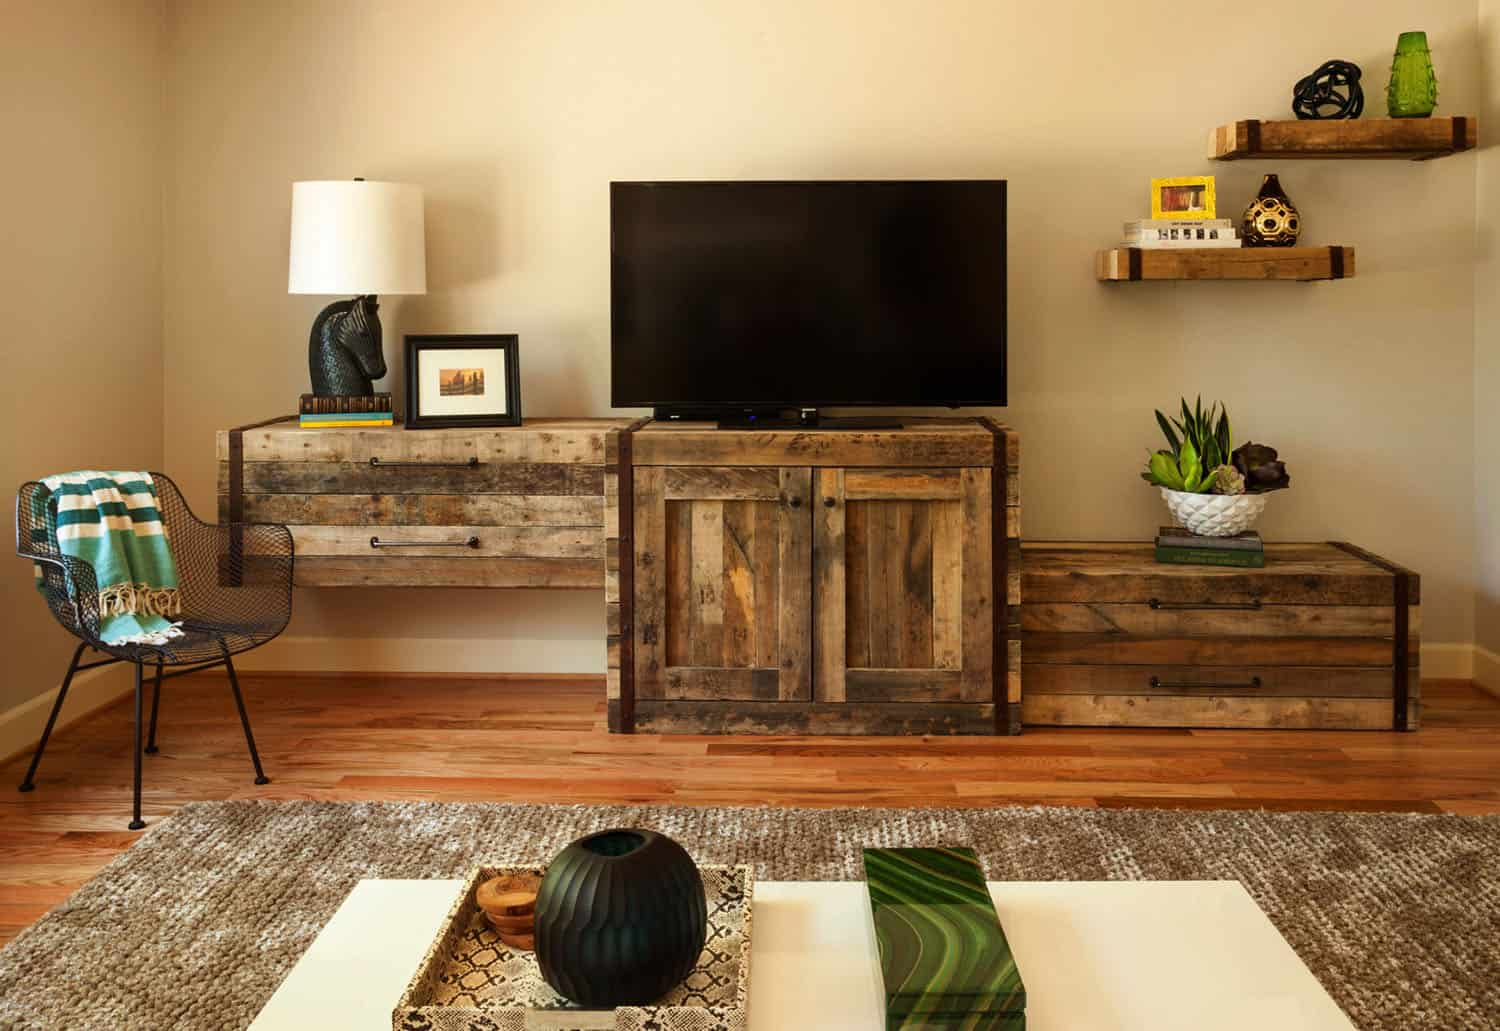 living-room-design-with-rustic-industrial-elements